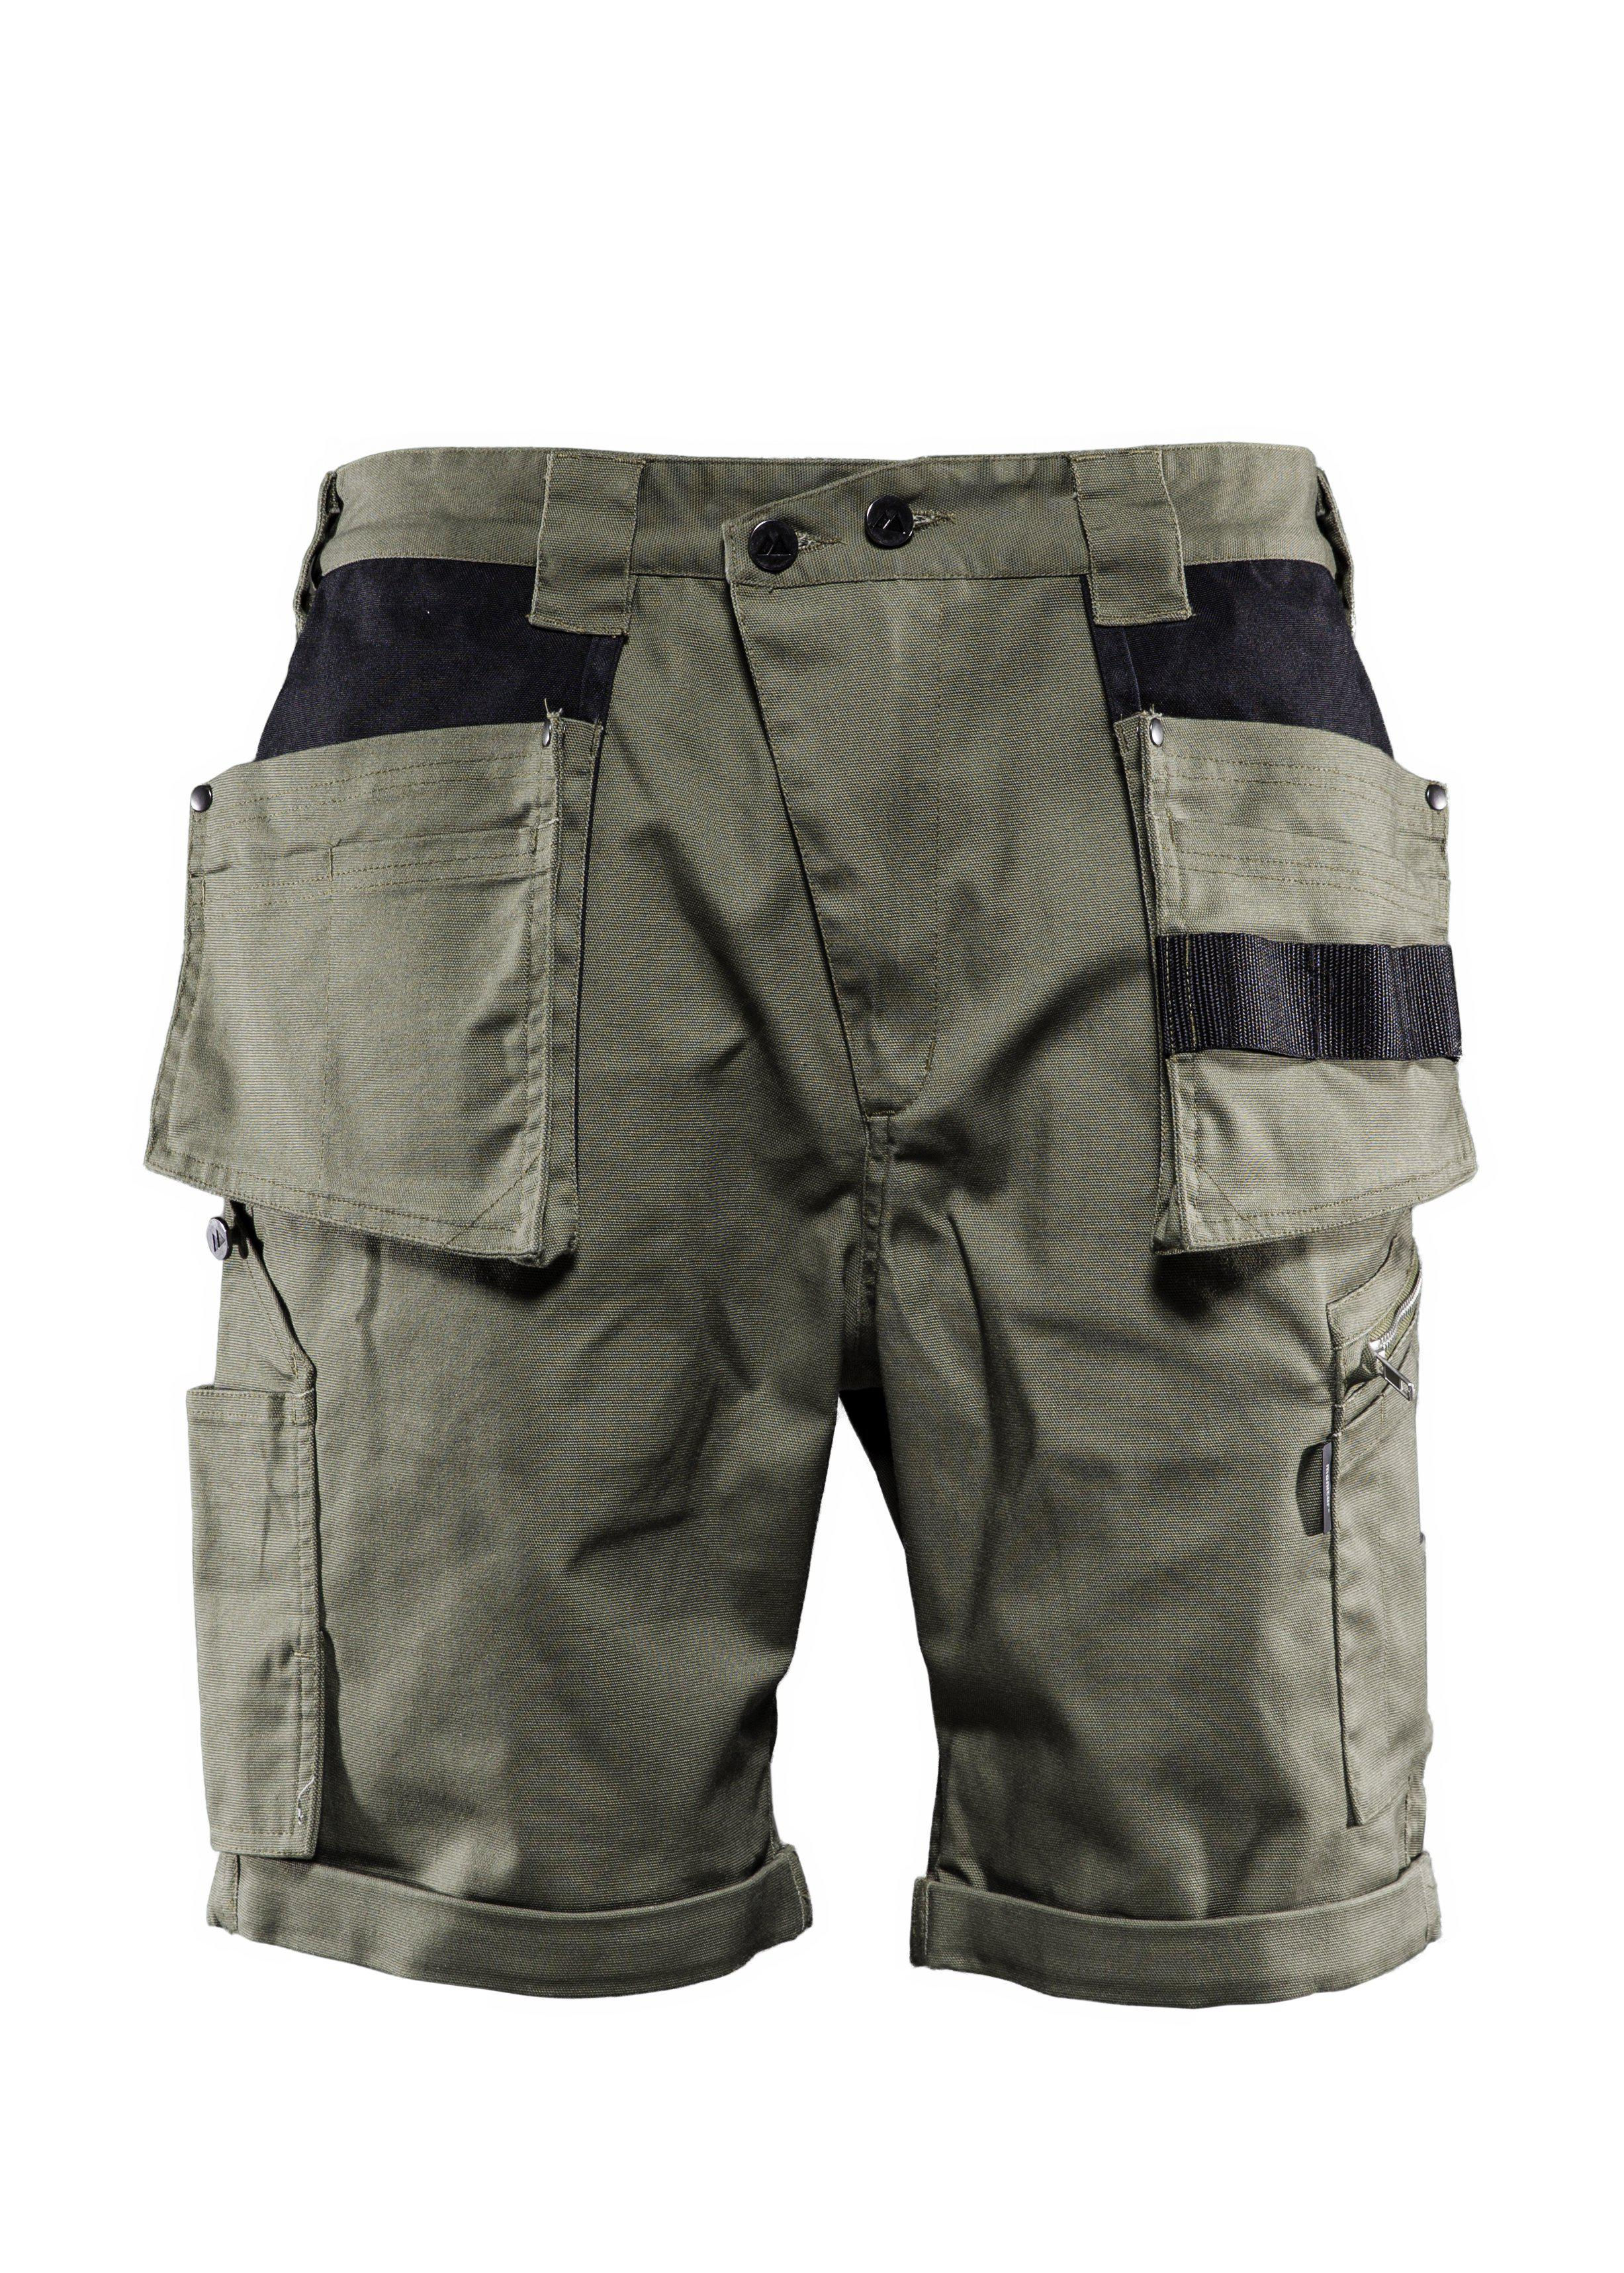 Versatile shorts, Carpenter shorts, Burnt olive green, XXL